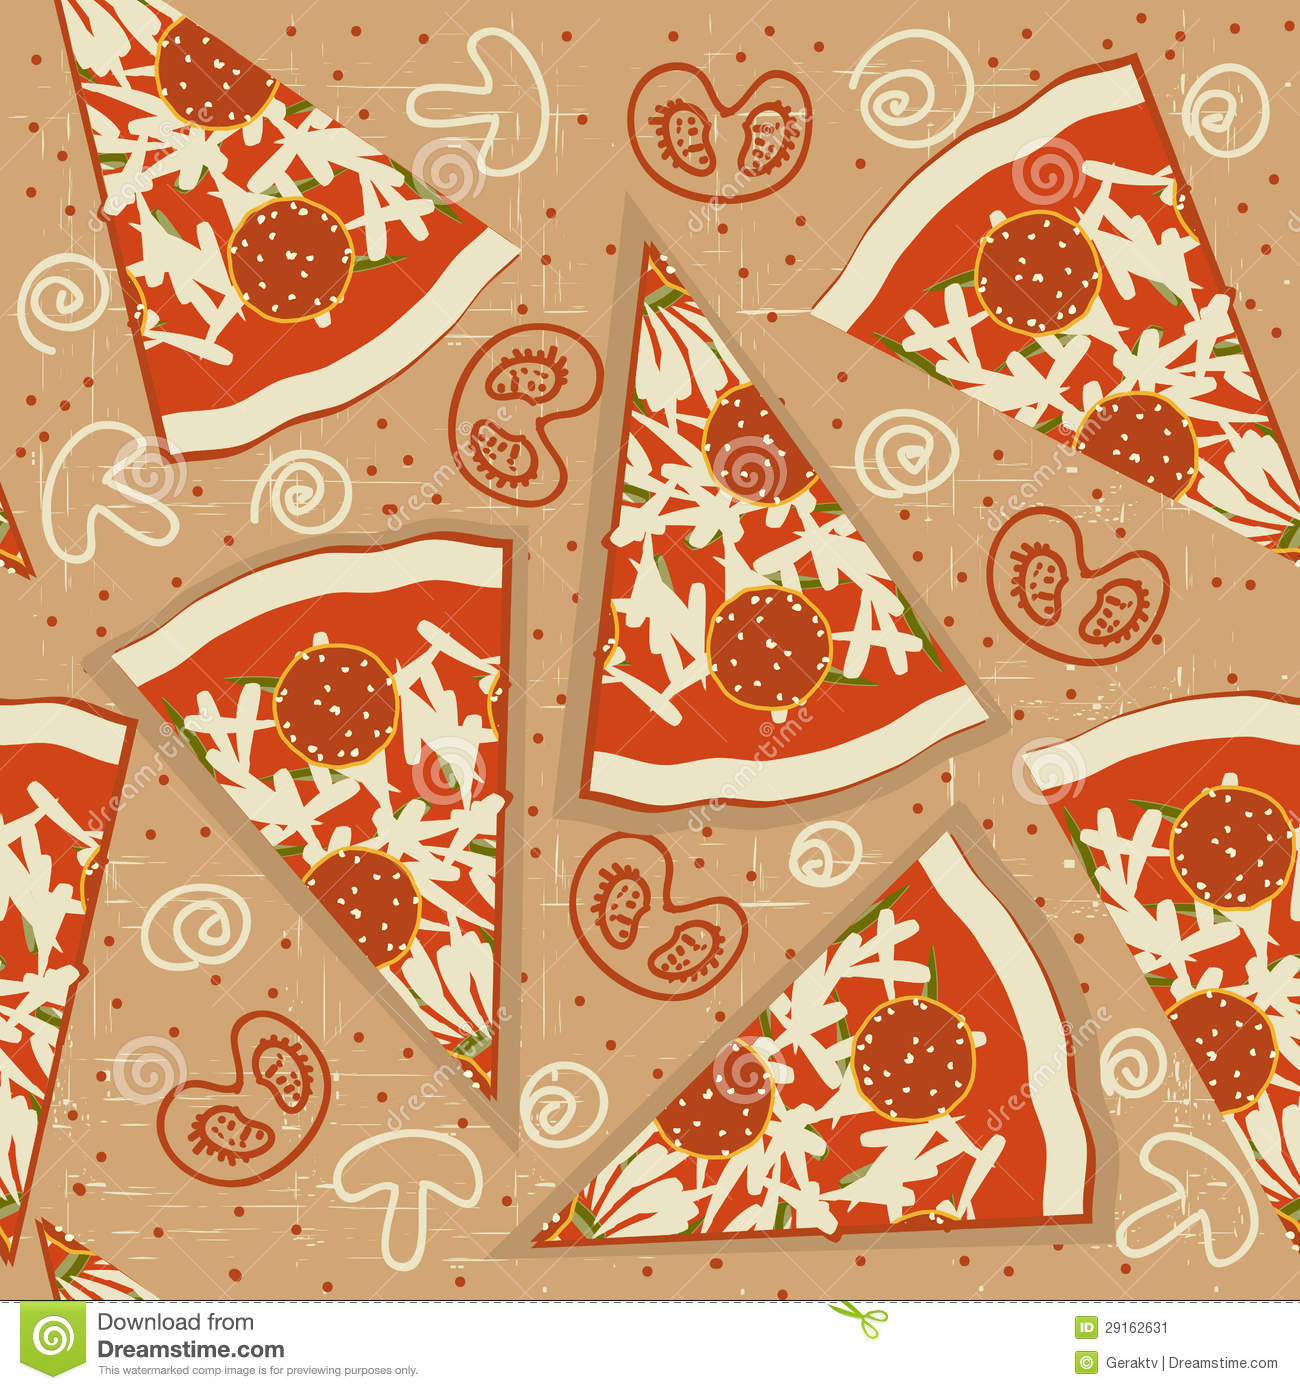 Pizza Seamless PatternVector Food Background Stock Image